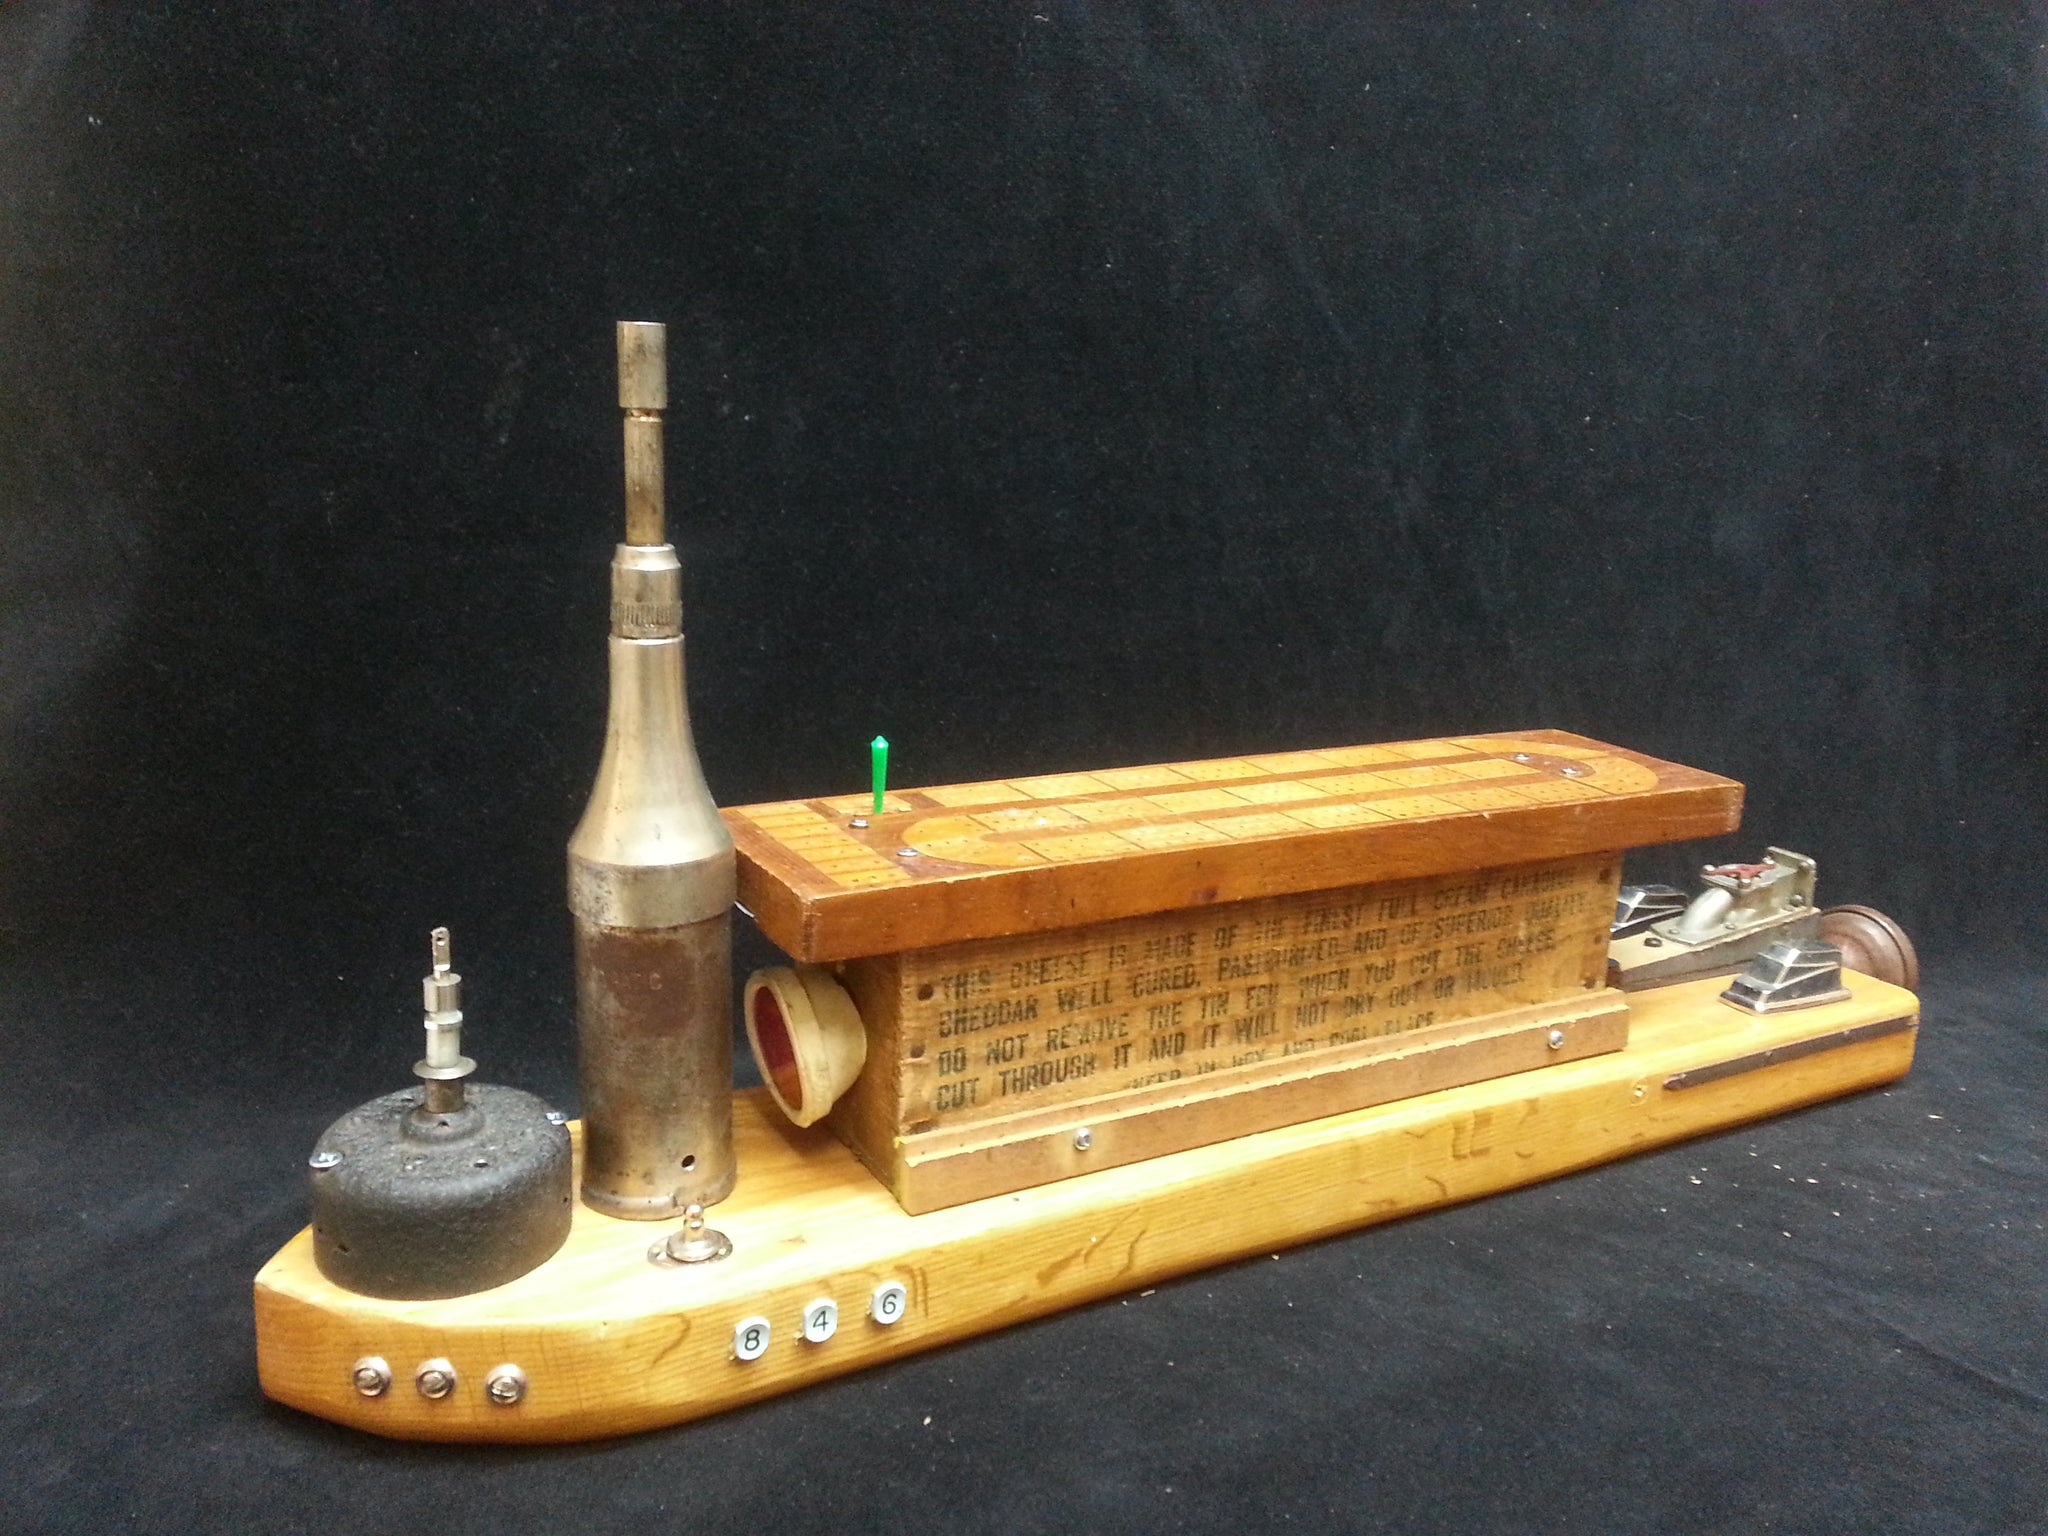 The Cribbage Steamer